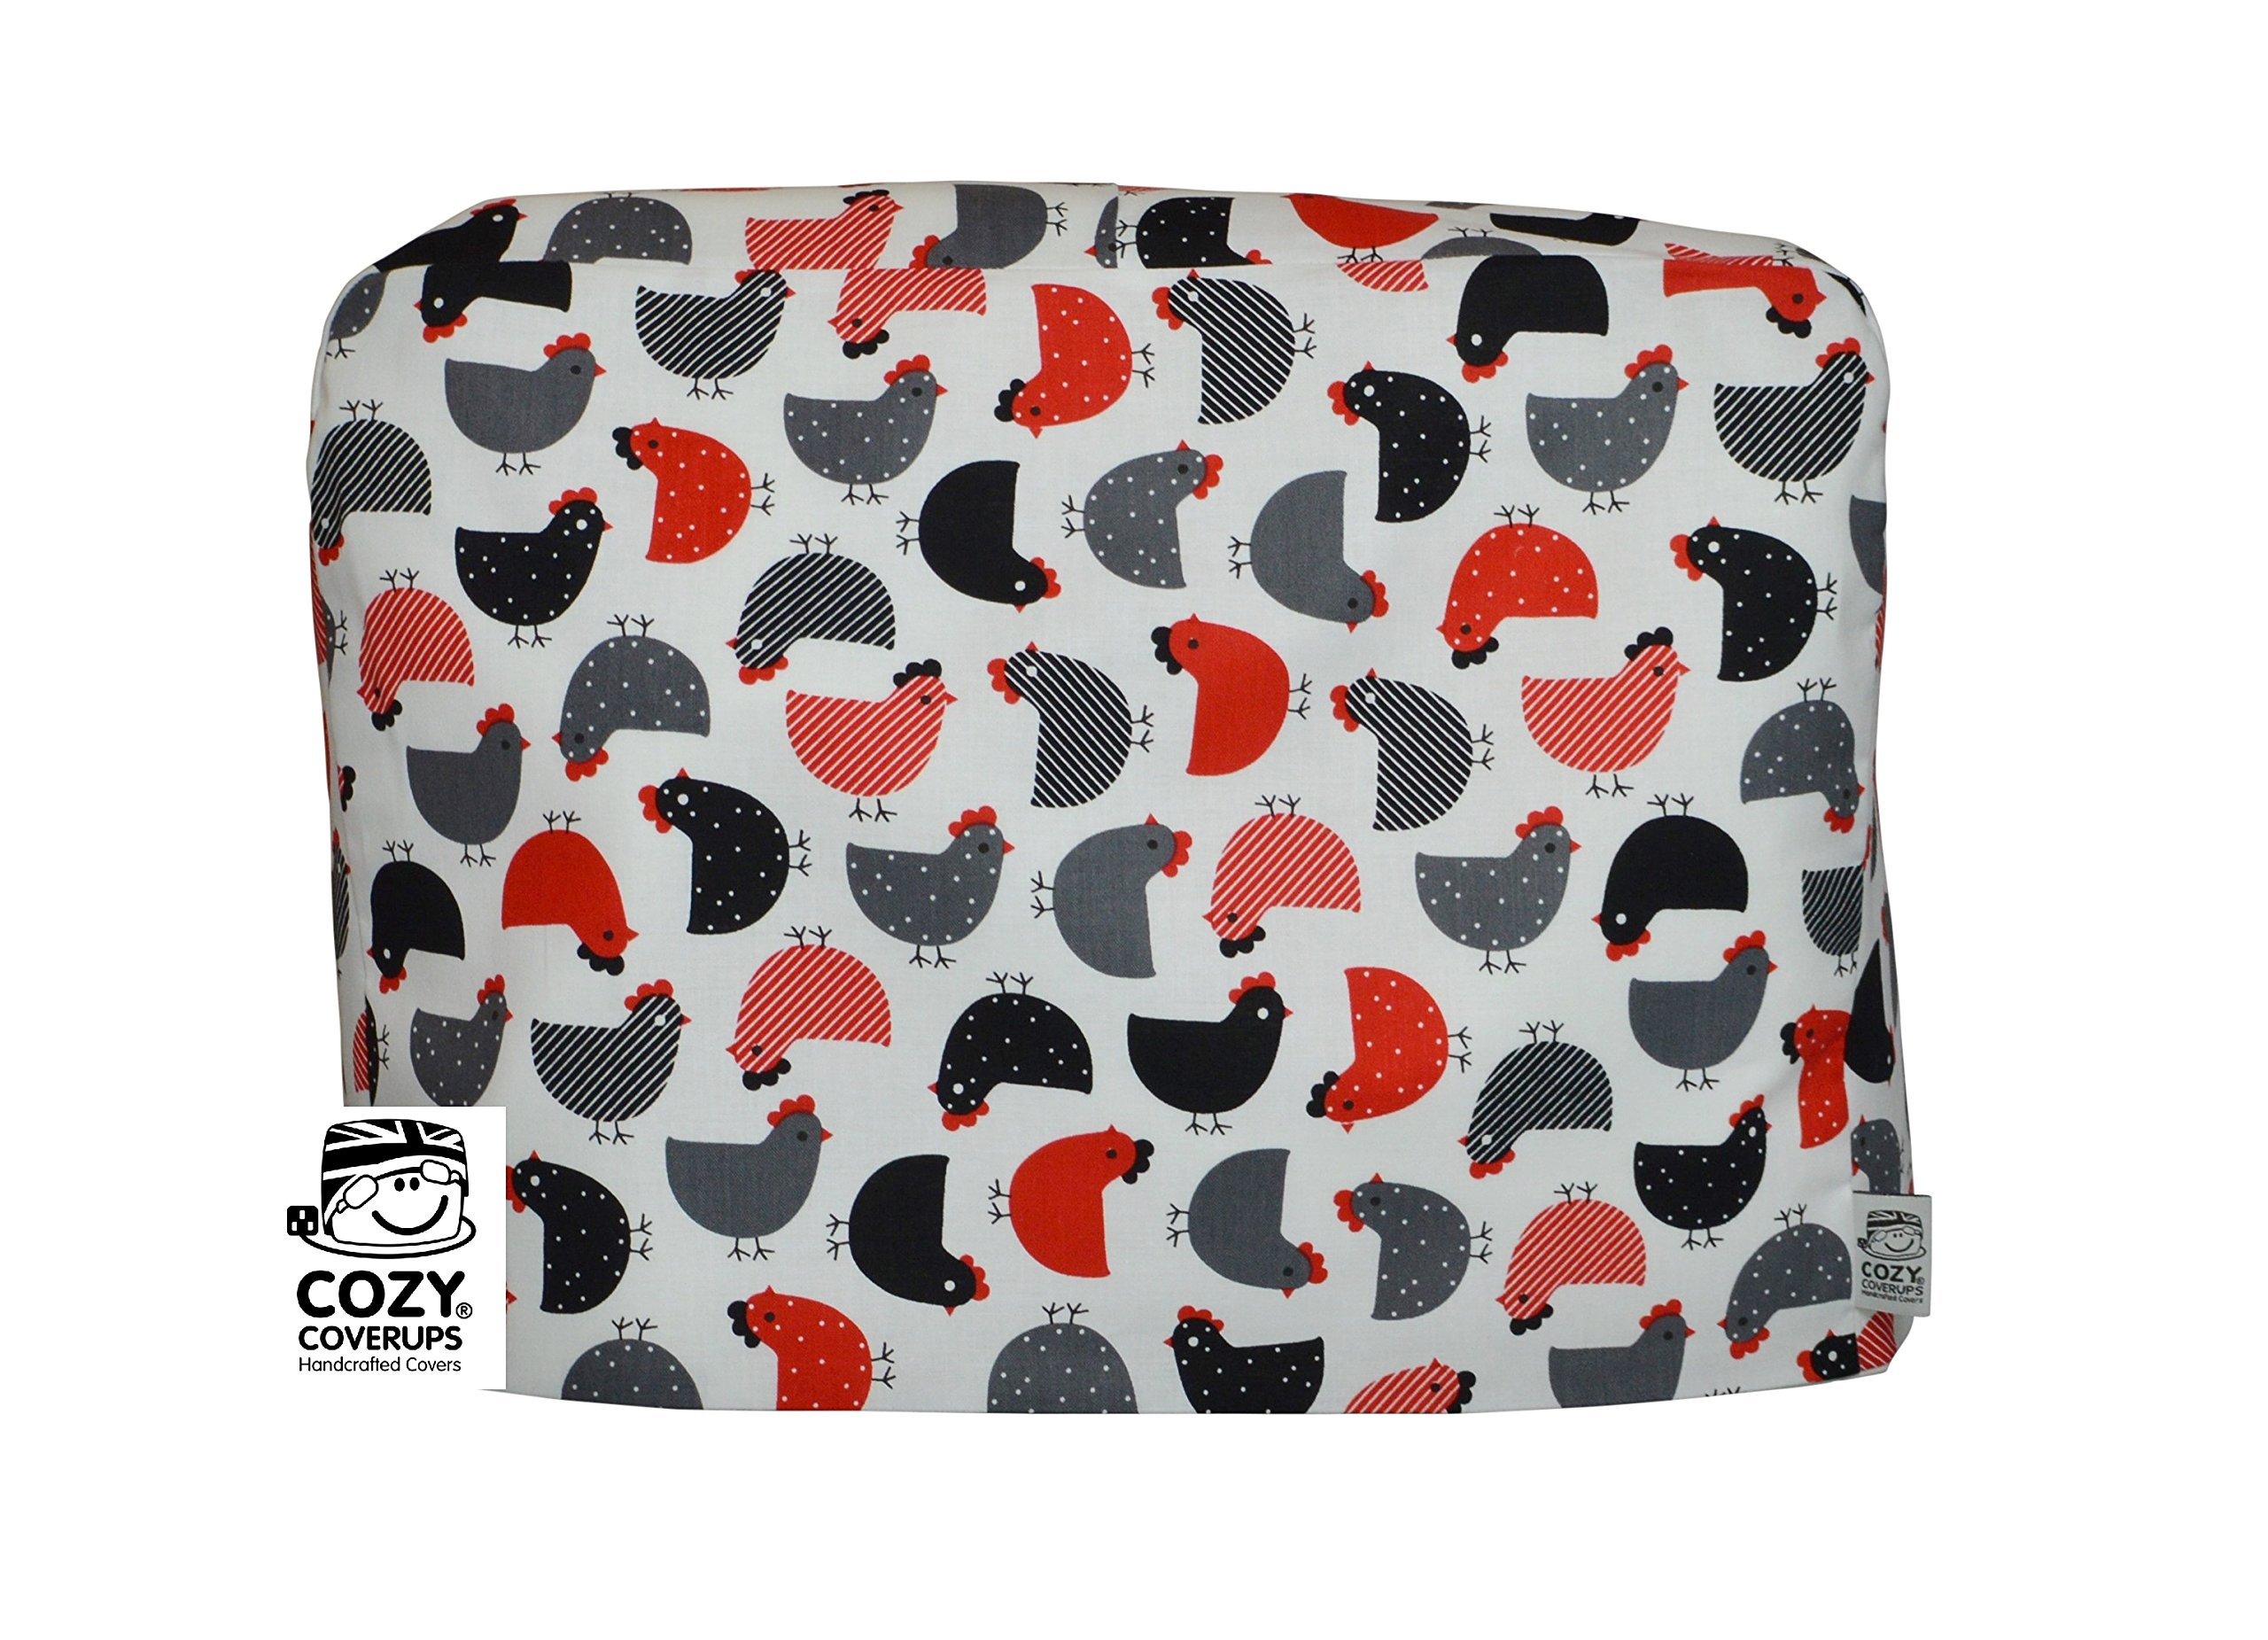 CozyCoverUp for Kitchenaid 5Quart Artisan Tilt Head Stand Mixer Dust Cover Black and Red Chickens on White Cotton, Handmade in the UK and fully lined